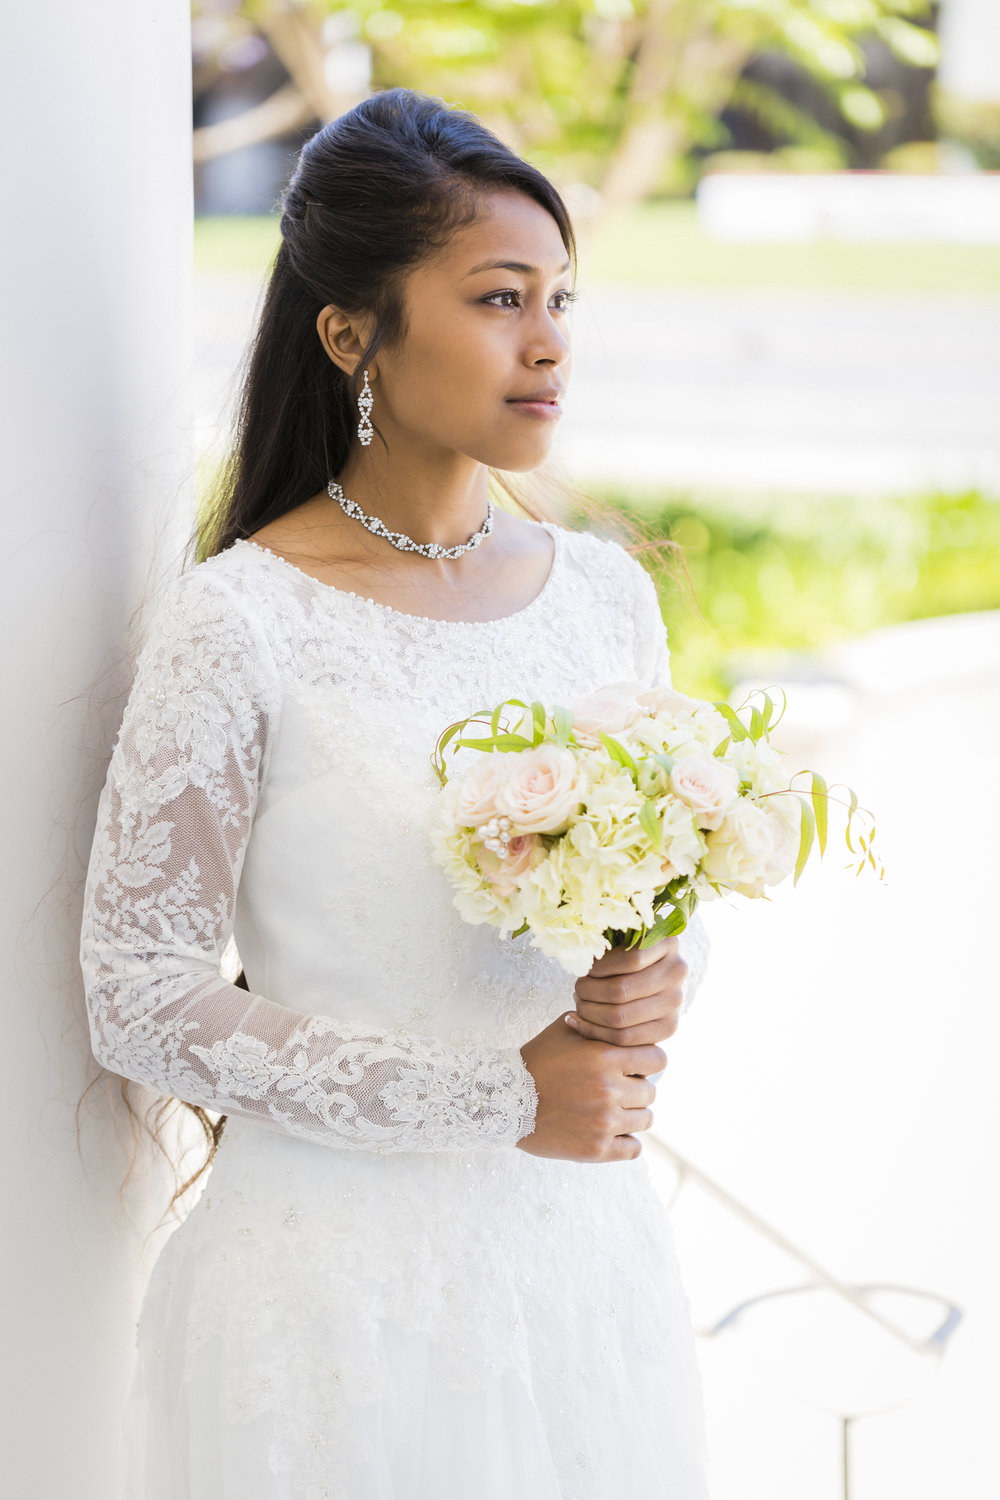 north-valley-baptist-church-wedding-bride-portrait-1.jpg